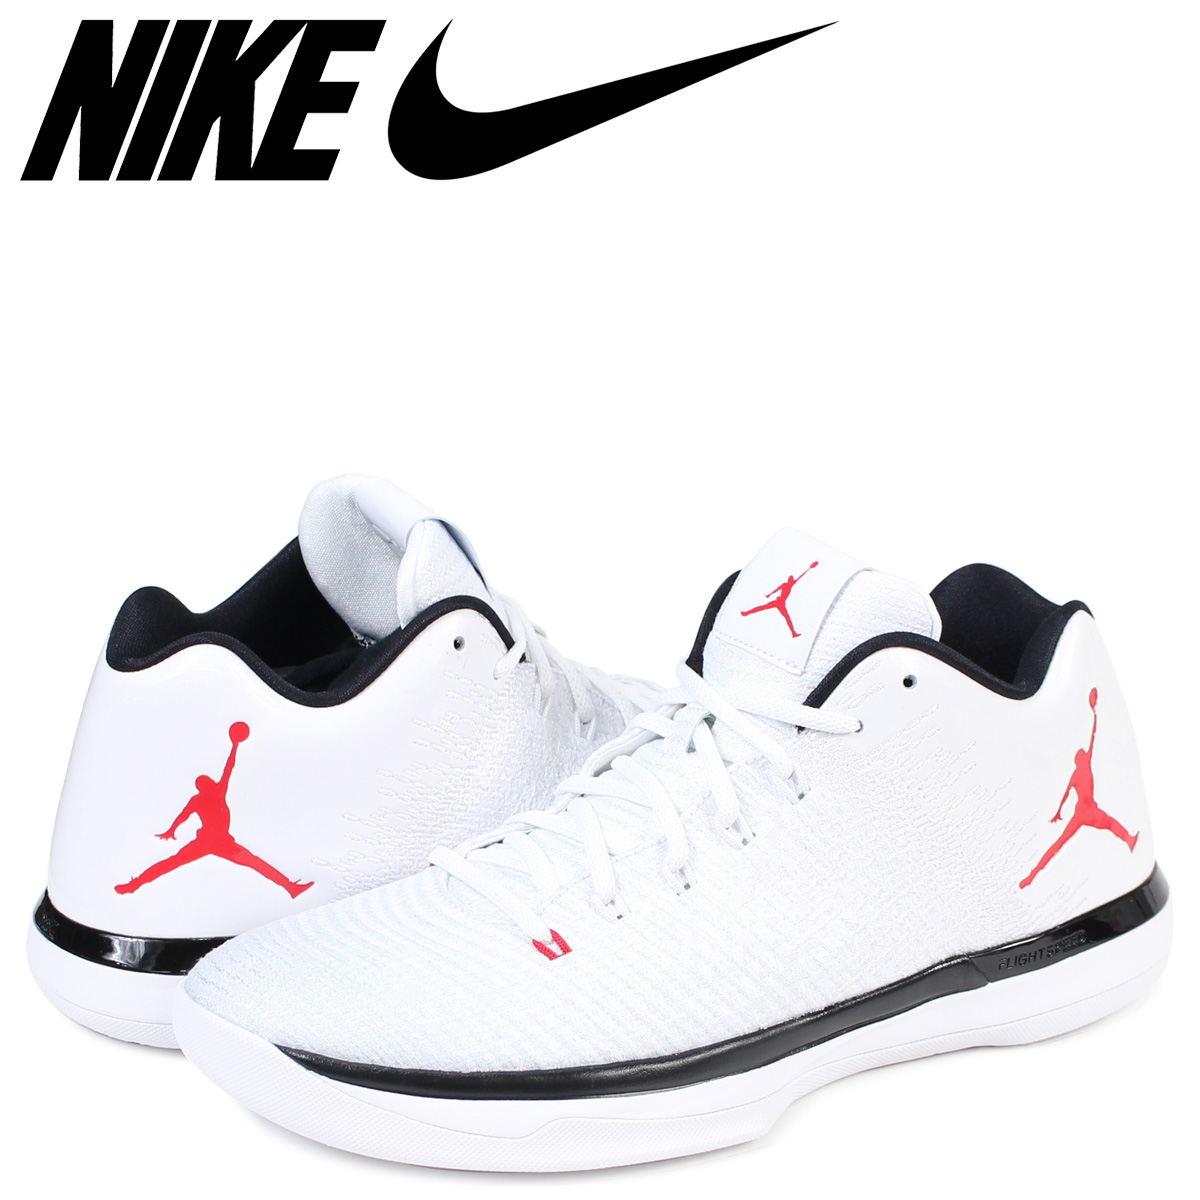 quality design ffb0b b413d NIKE AIR JORDAN 31 LOW Nike Air Jordan 31 sneakers 897,564-101 men's white